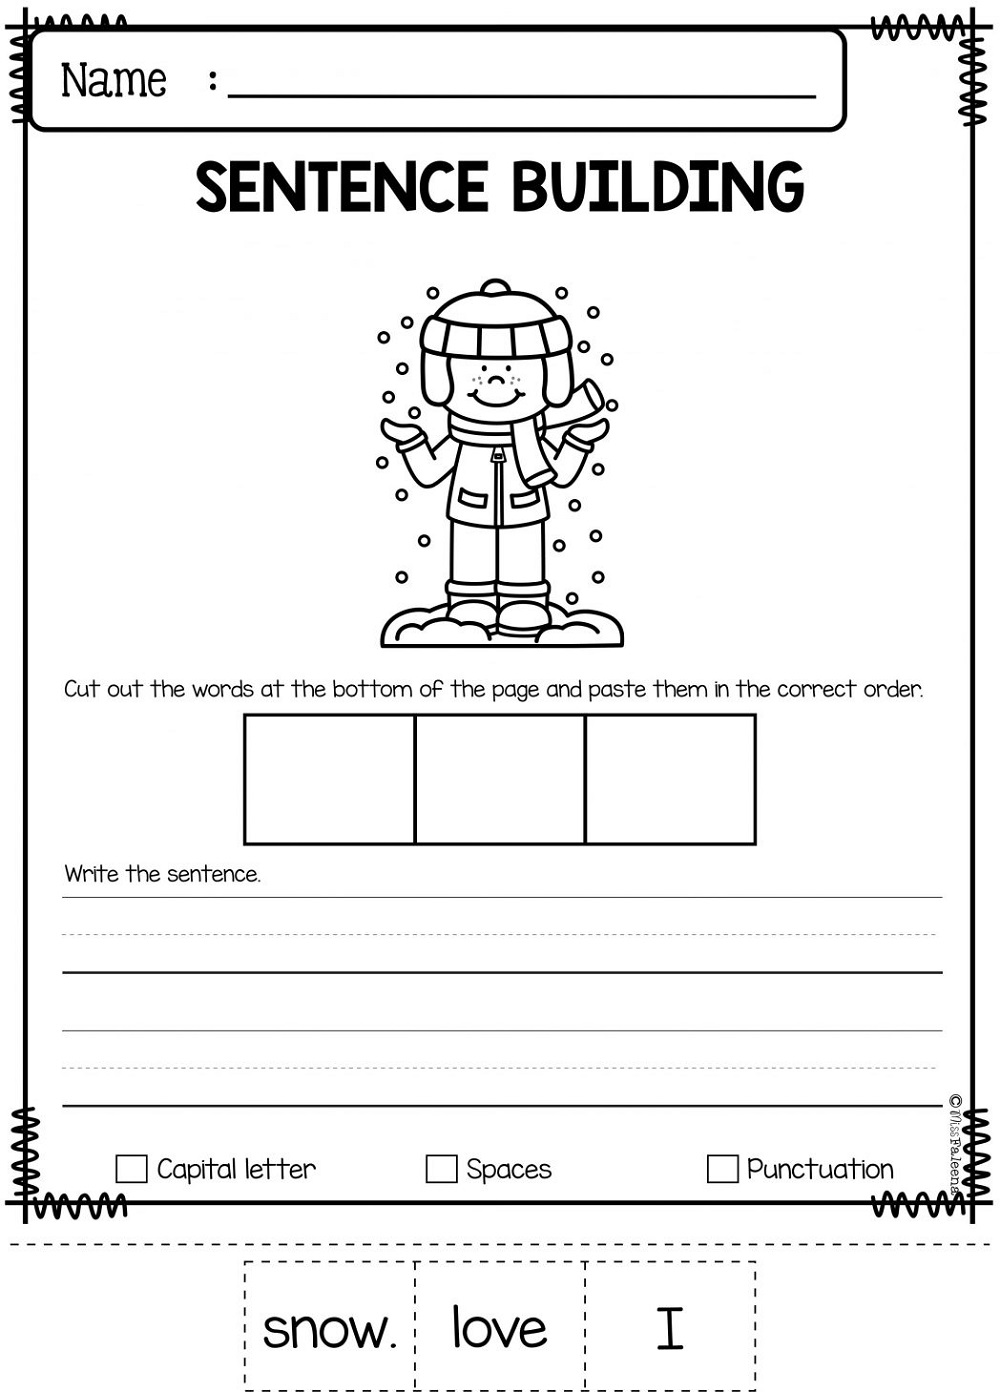 Free Printable Worksheets For Elementary Students Sentence Building